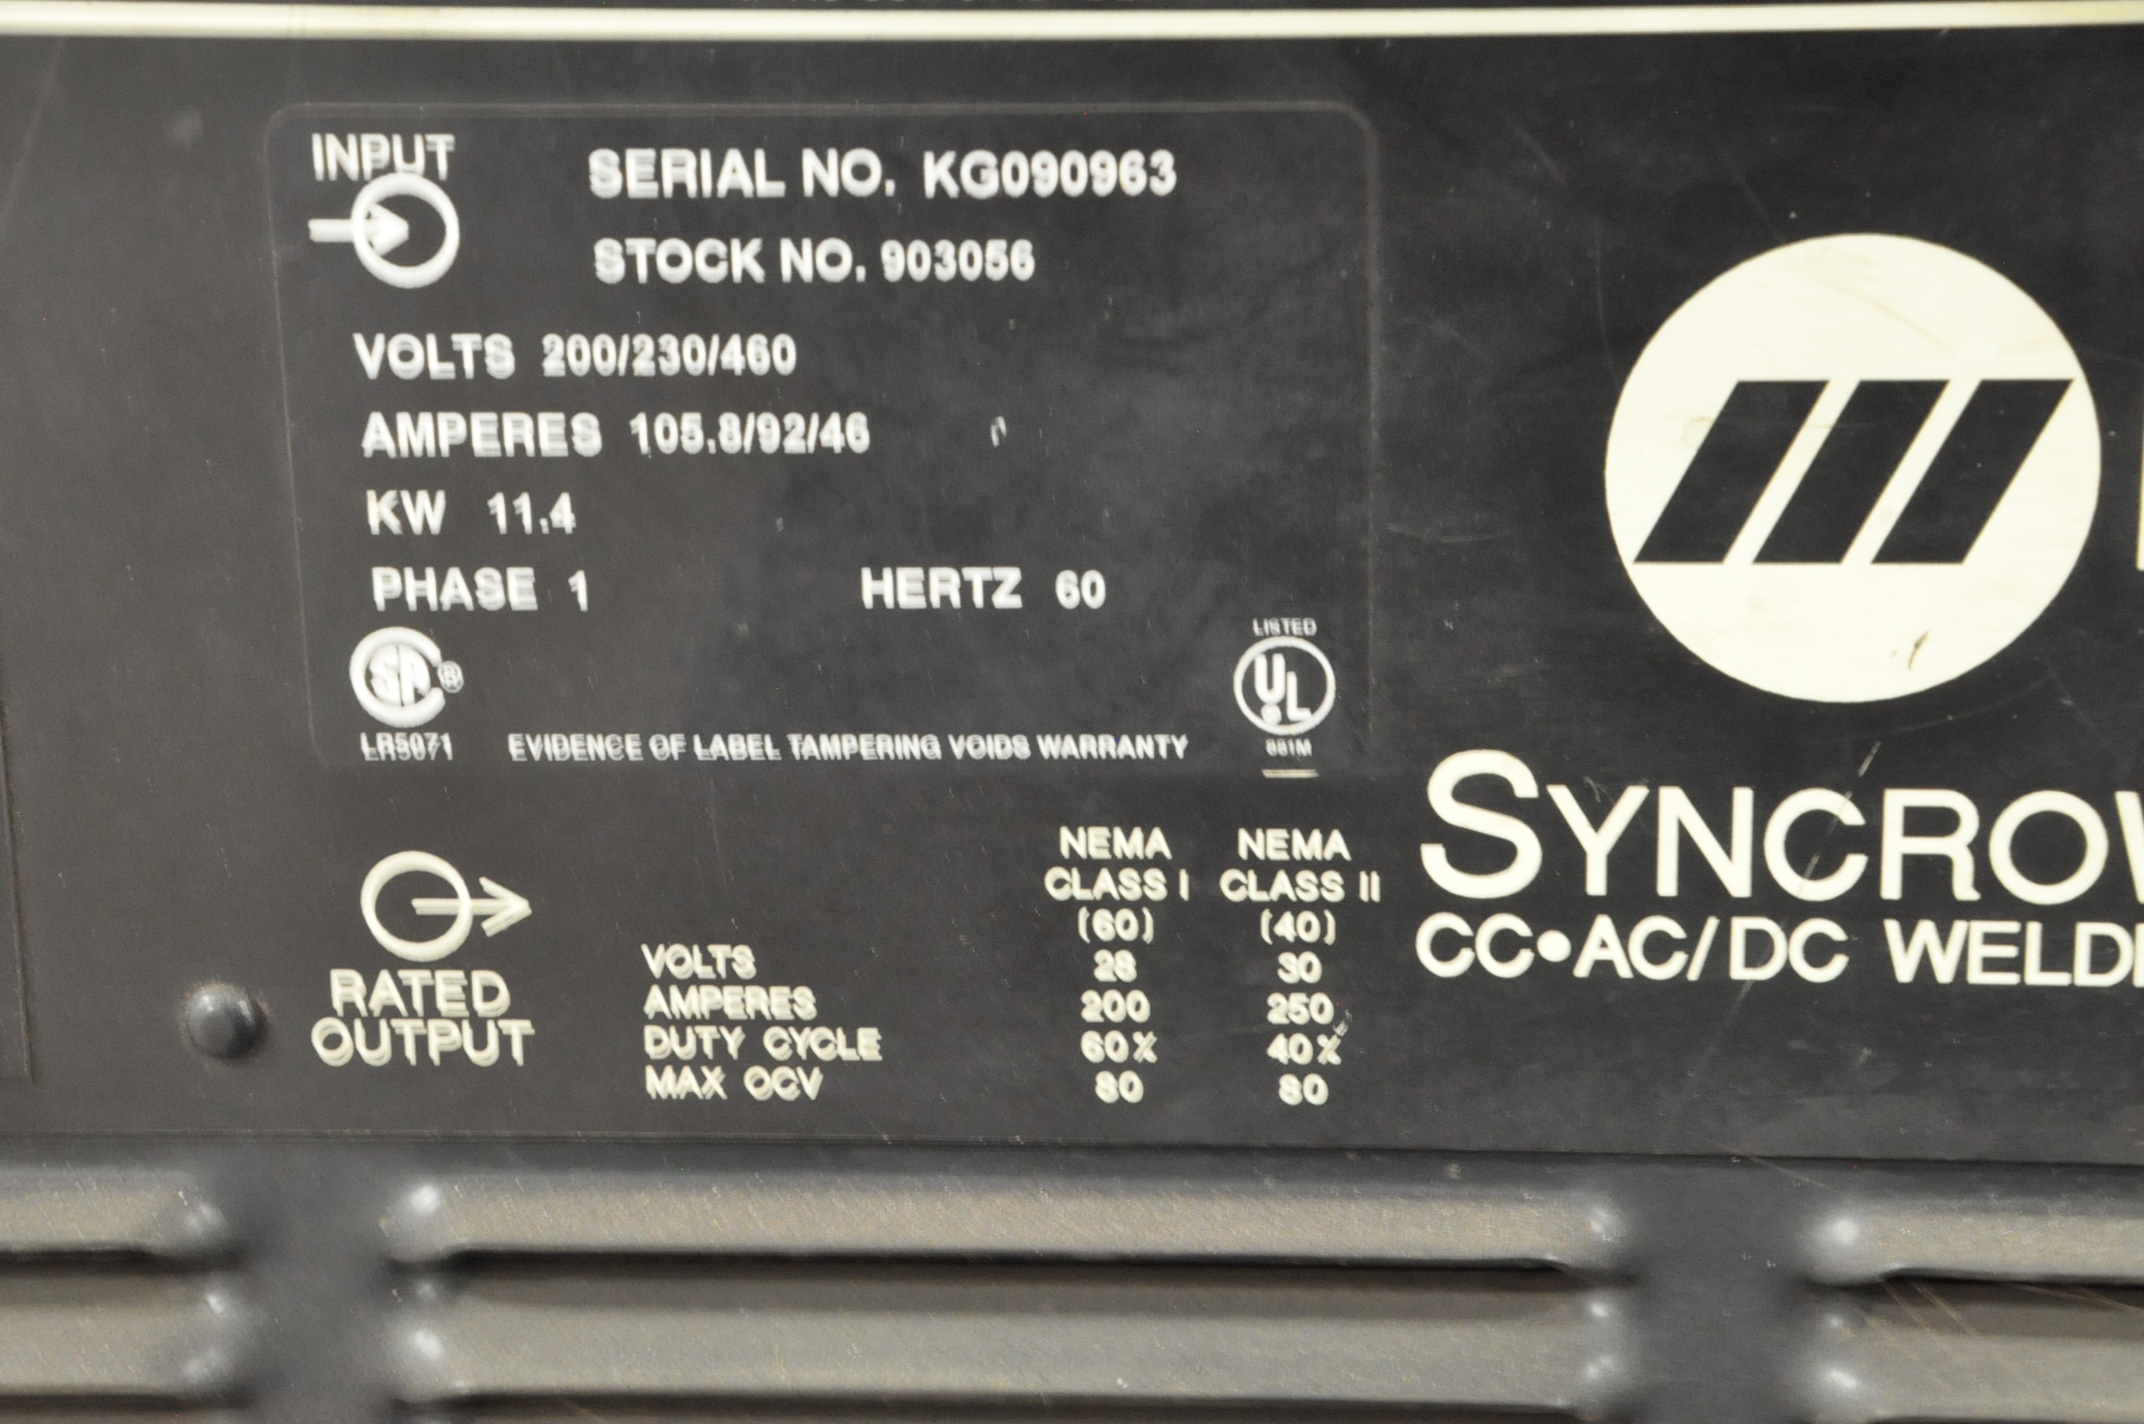 Miller Syncrowave 250, CC AC/DC Tig Welder, S/n KG090963 (1996), with Leads - Image 4 of 4